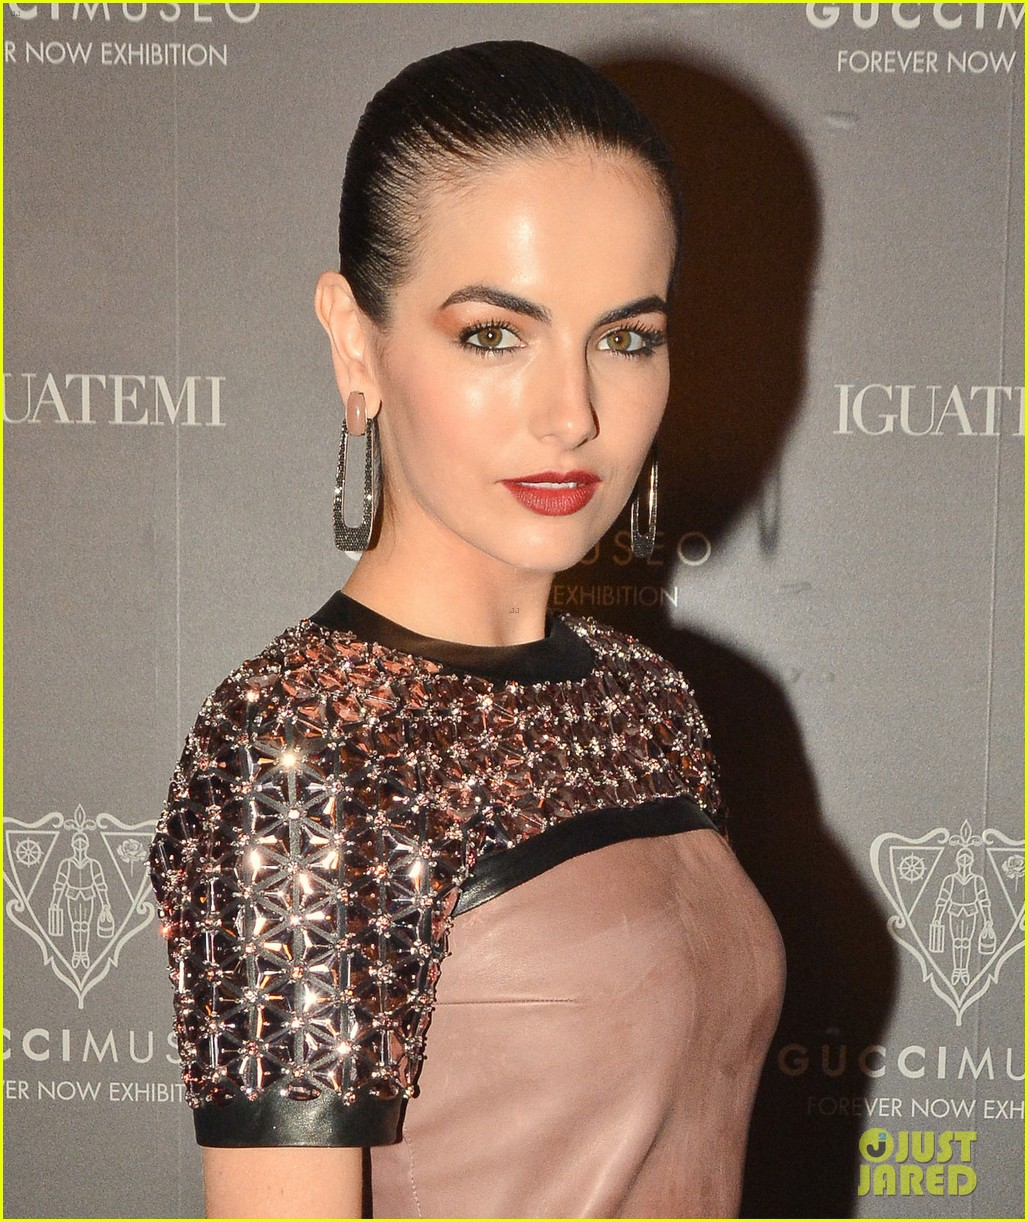 camilla belle gucci museo forever now exhibit 103123833